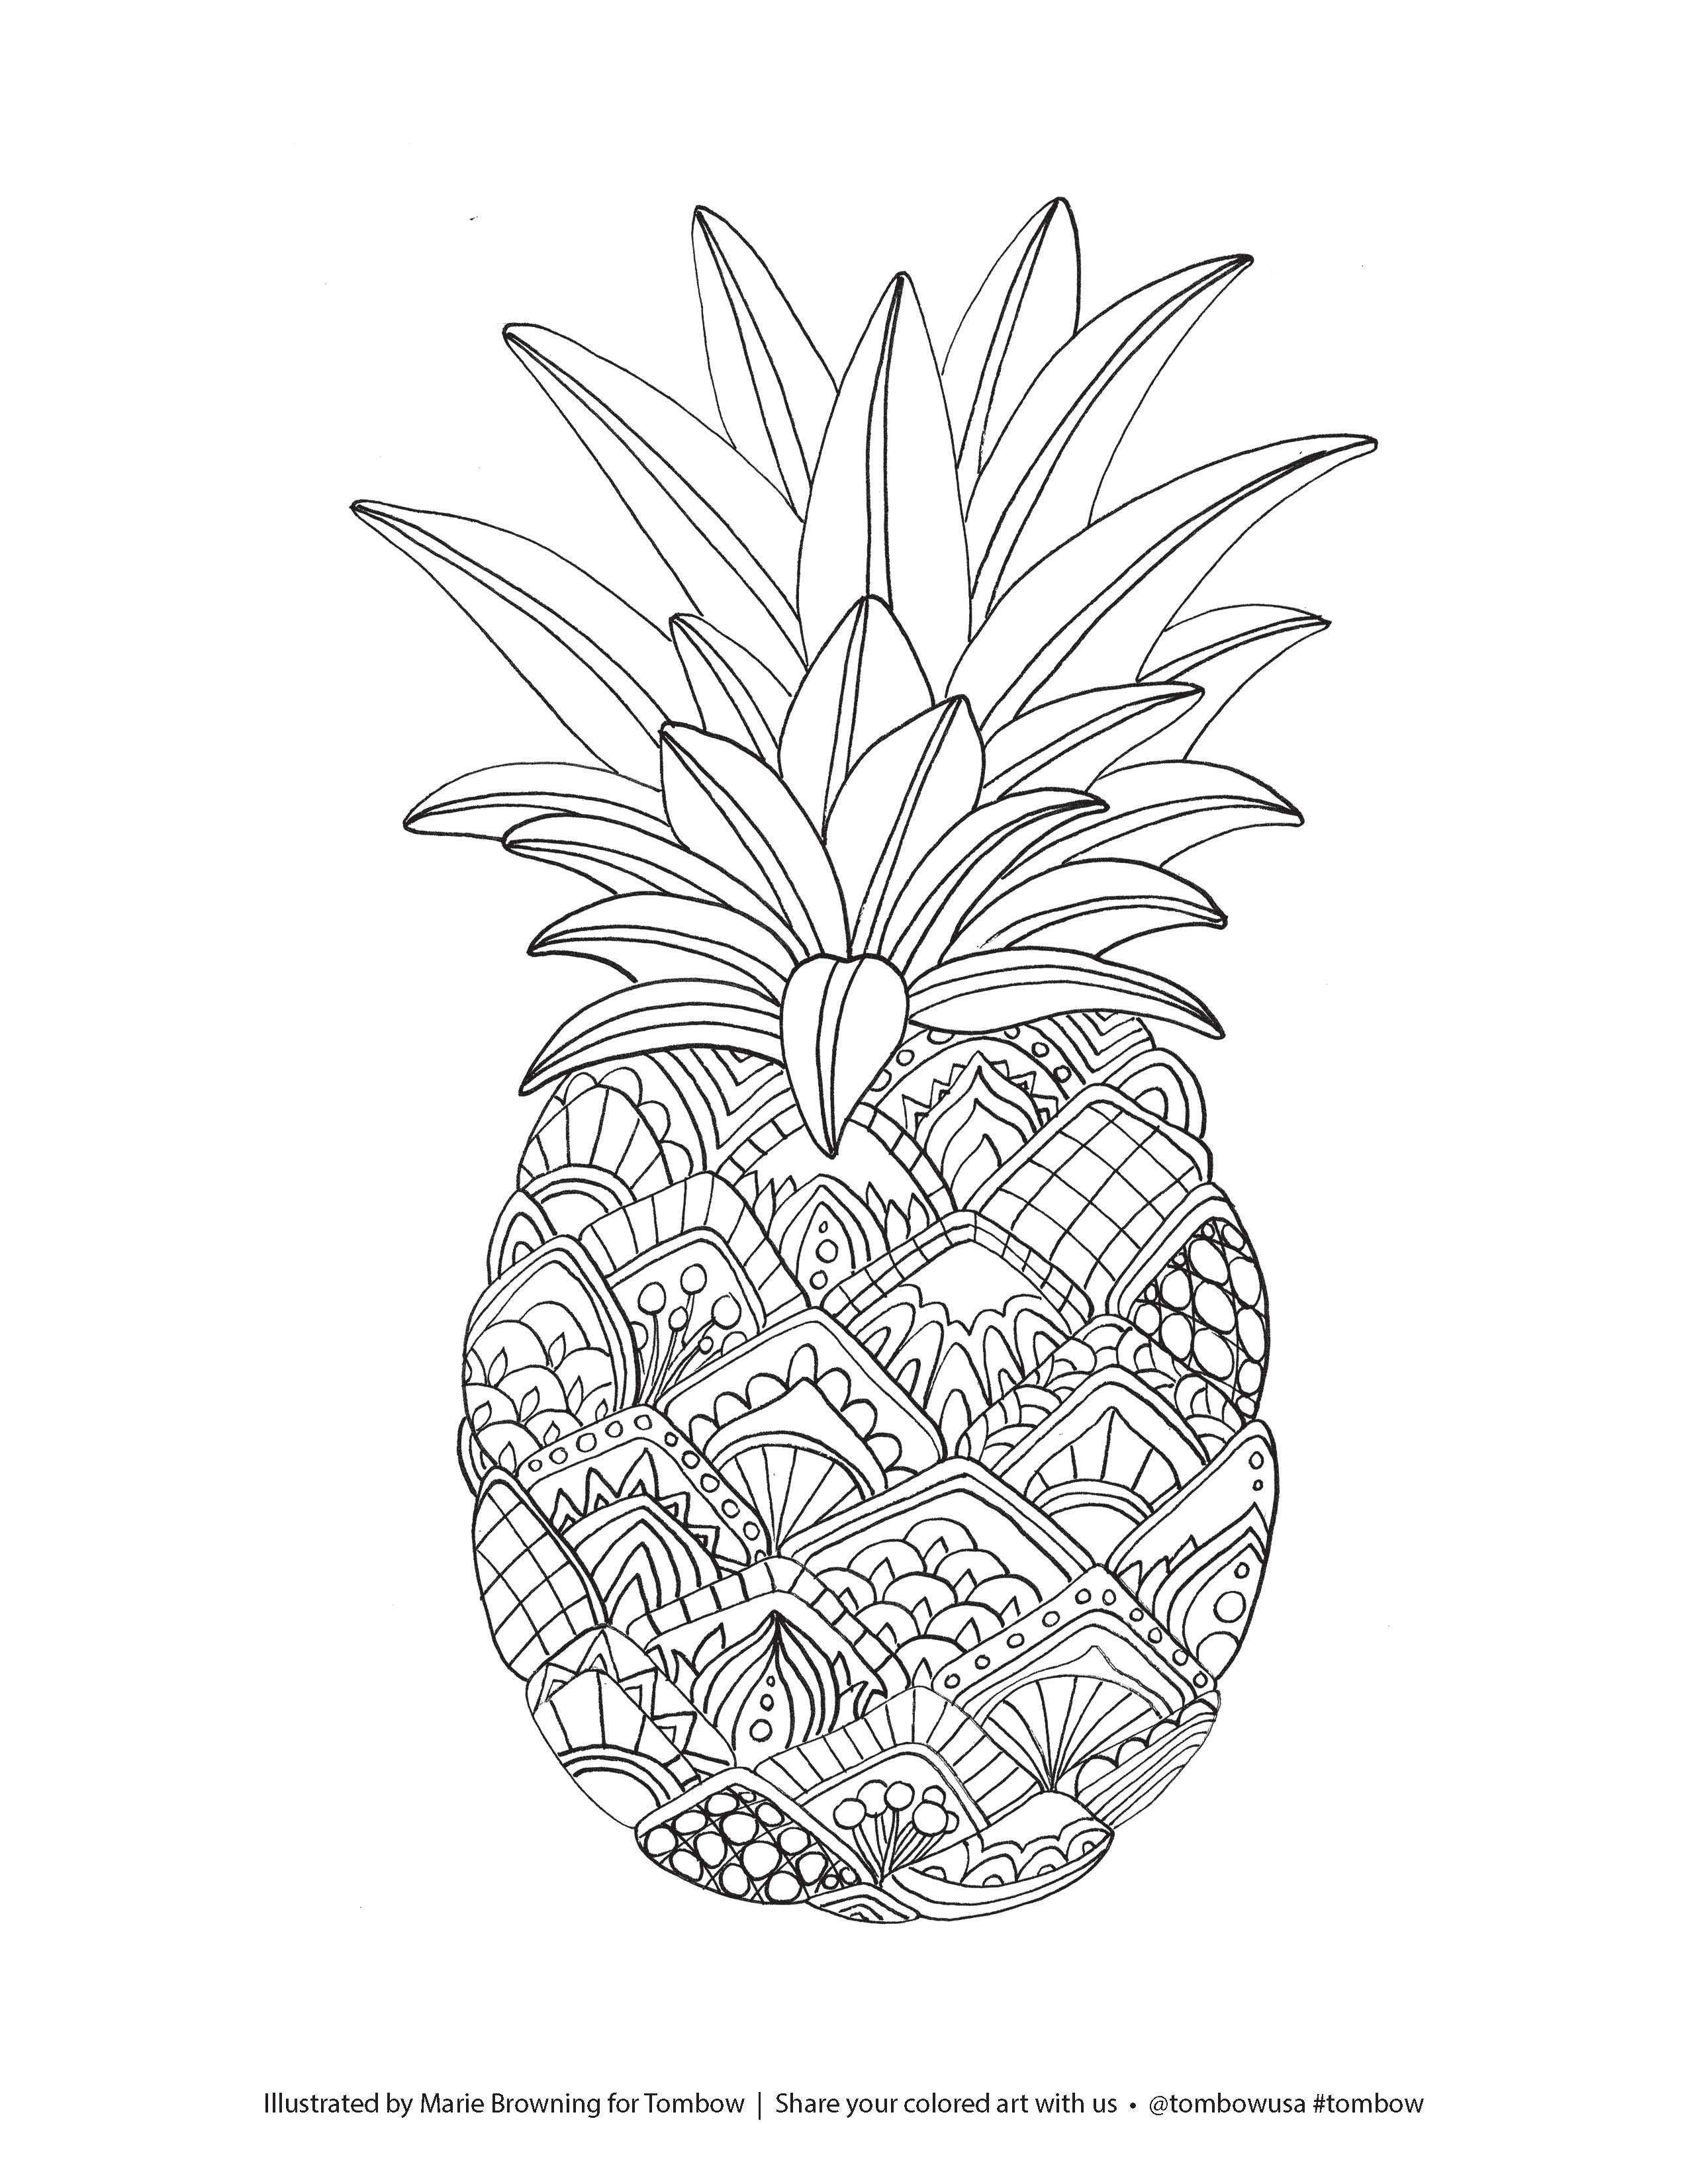 pineapple coloring image philippines queen sweetest pineapple coloring page image coloring pineapple